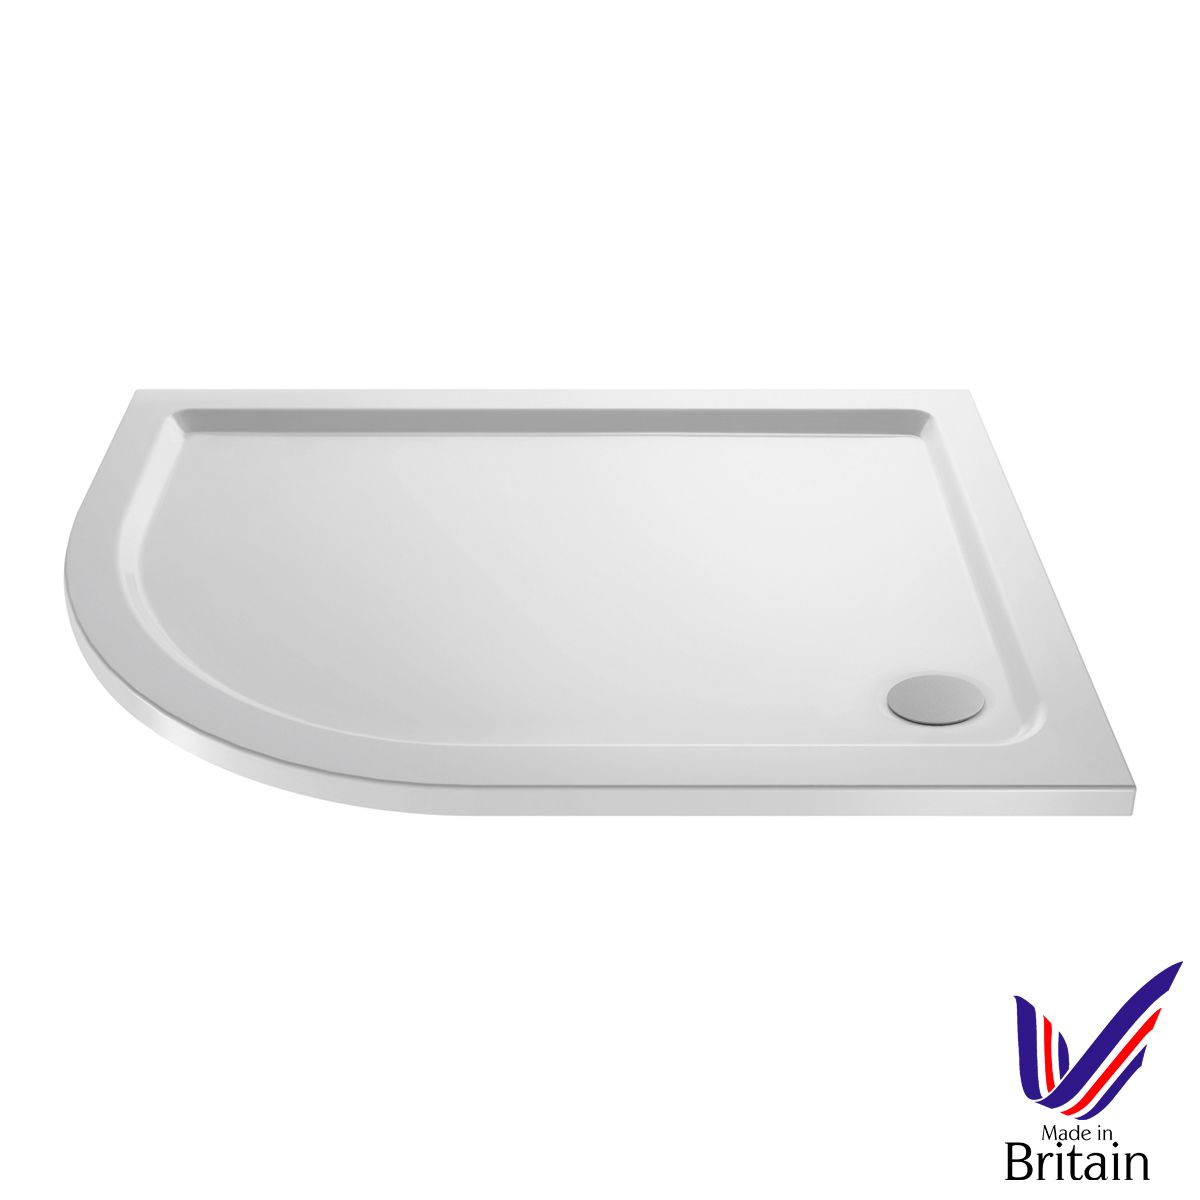 900 x 800 Shower Tray Offset Quadrant Low Profile Left Hand by Pearlstone